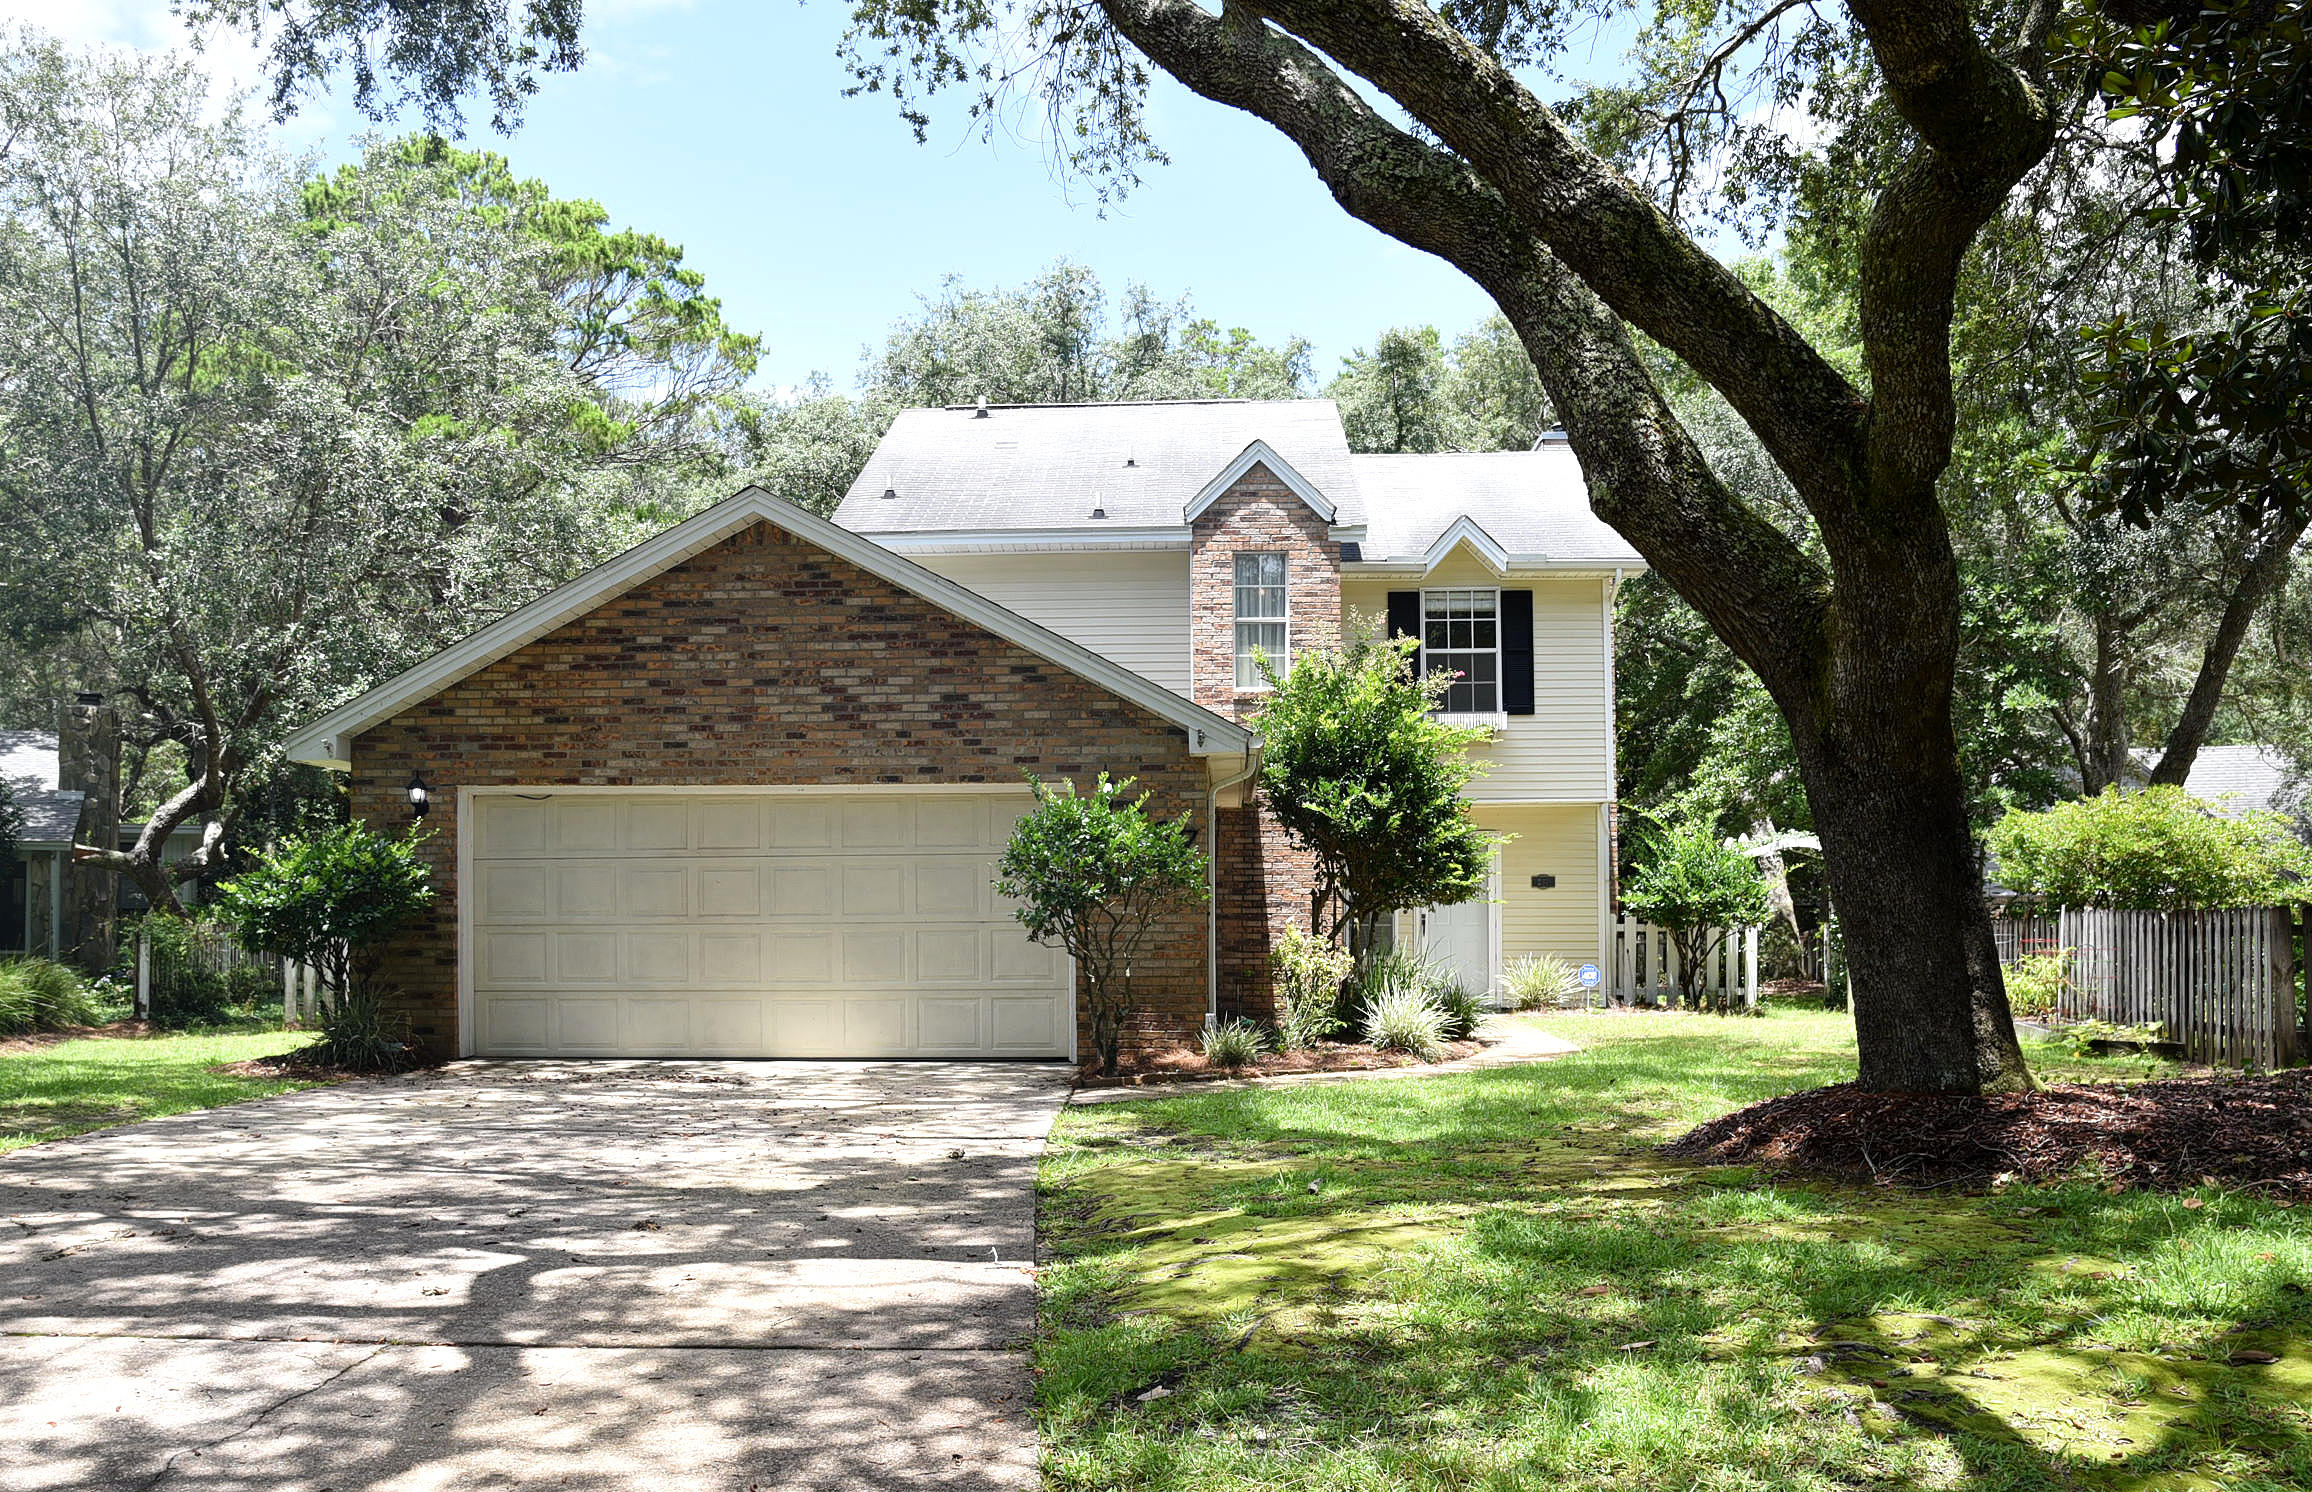 267 W Dominica Circle, Niceville in Okaloosa County, FL 32578 Home for Sale